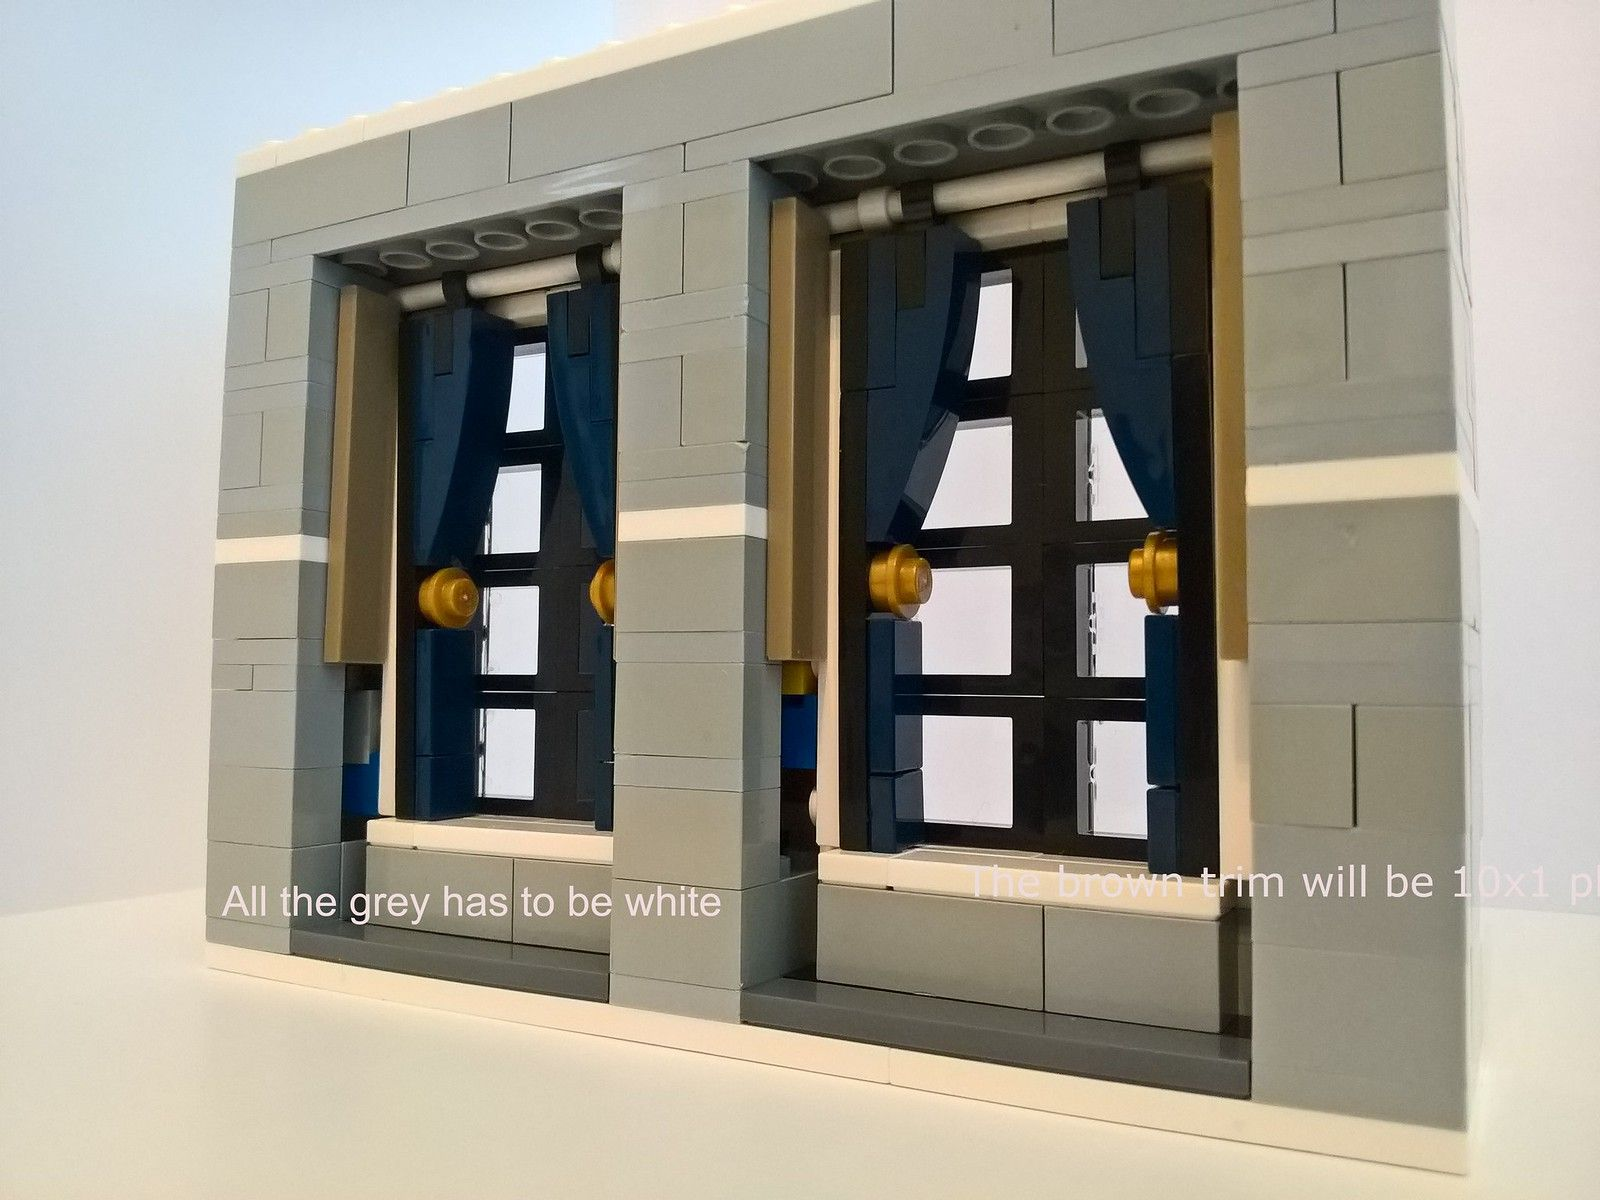 Lego Snot Window Technique In 2020 Lego Lego Design Lego Architecture